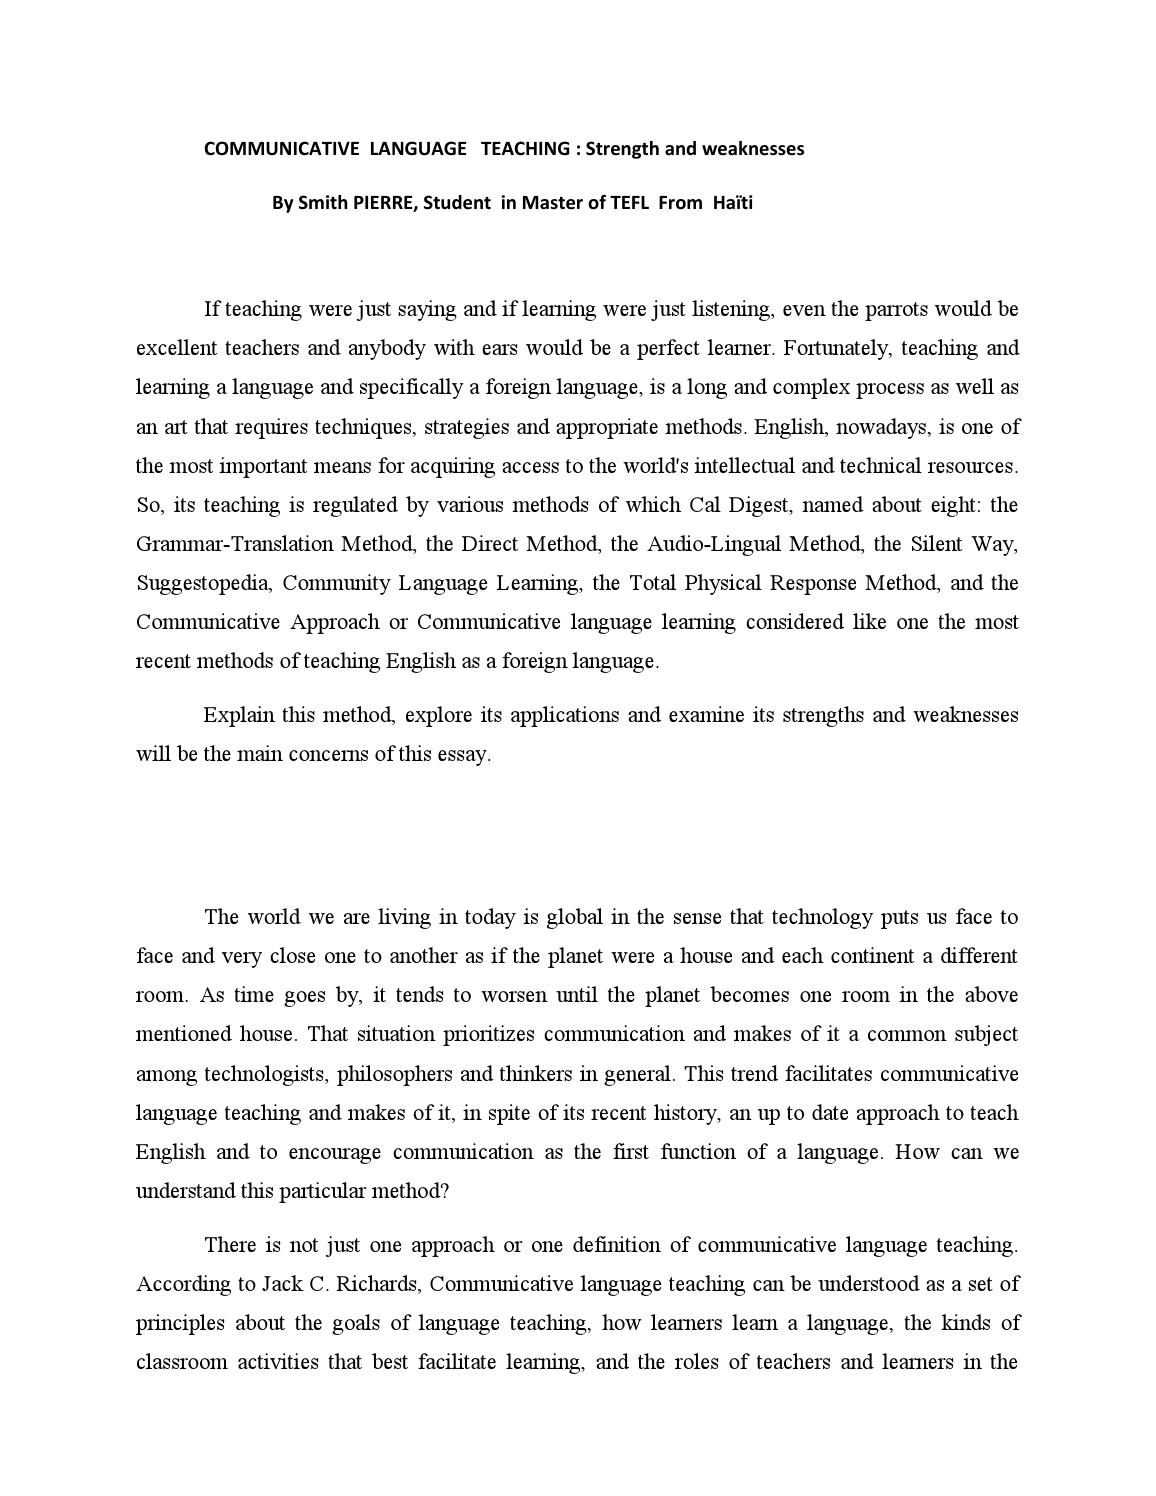 Declaration Of Independence Essays  Essay On World Hunger also English Essays Communicative Language Teachingessay By Smith Pierre  Issuu Invention Of Computer Essay